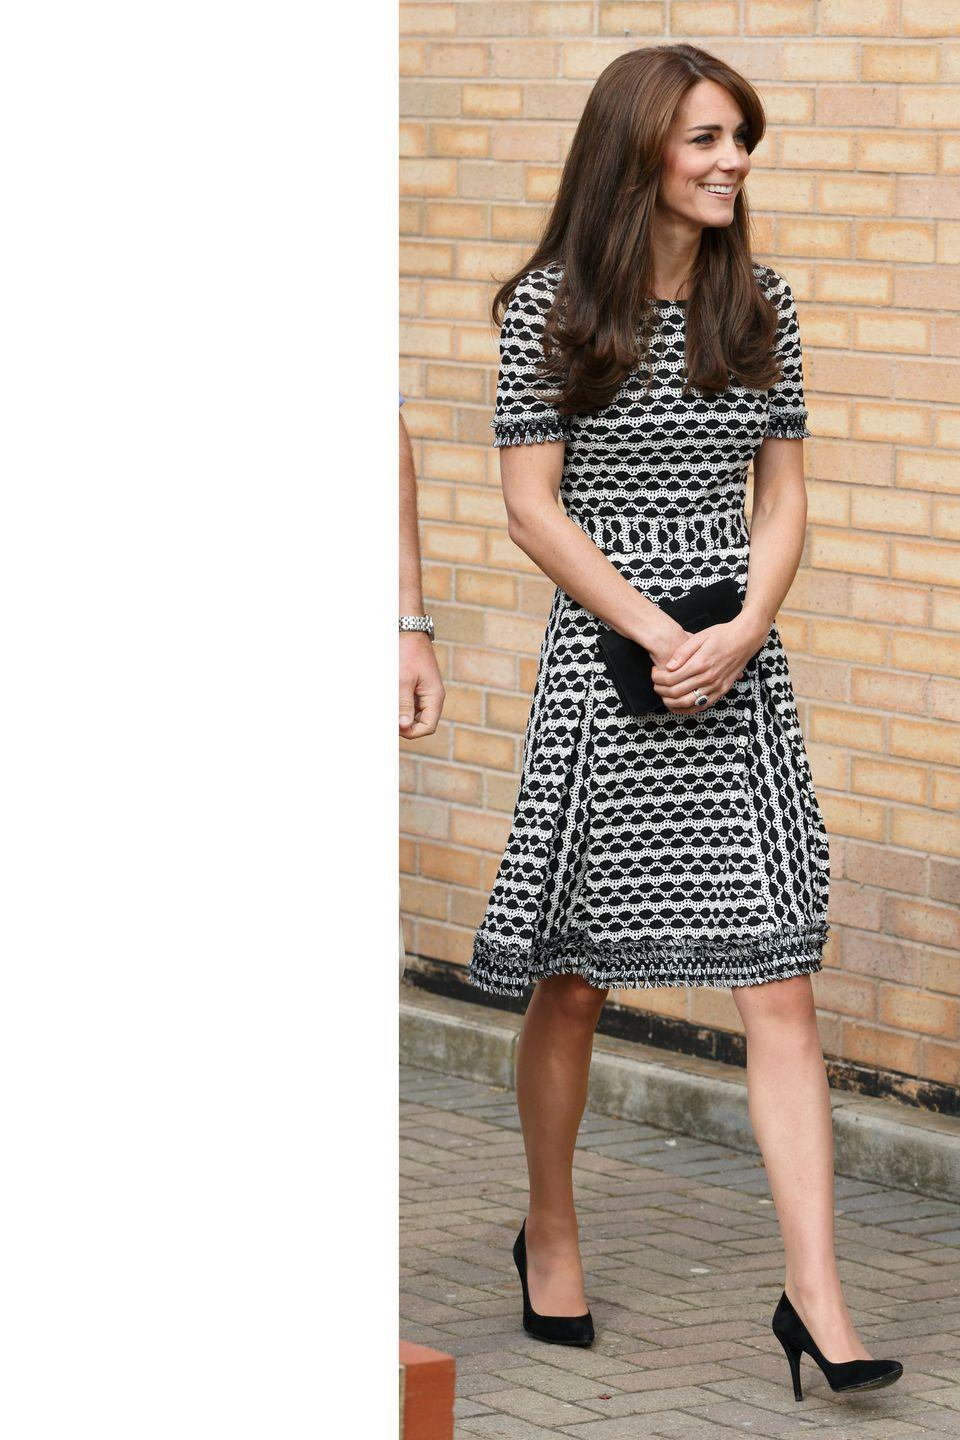 <p>The Duchess makes a public appearance for World Mental Health Day wearing a Tory Burch dress with simple black pumps and a clutch. </p>